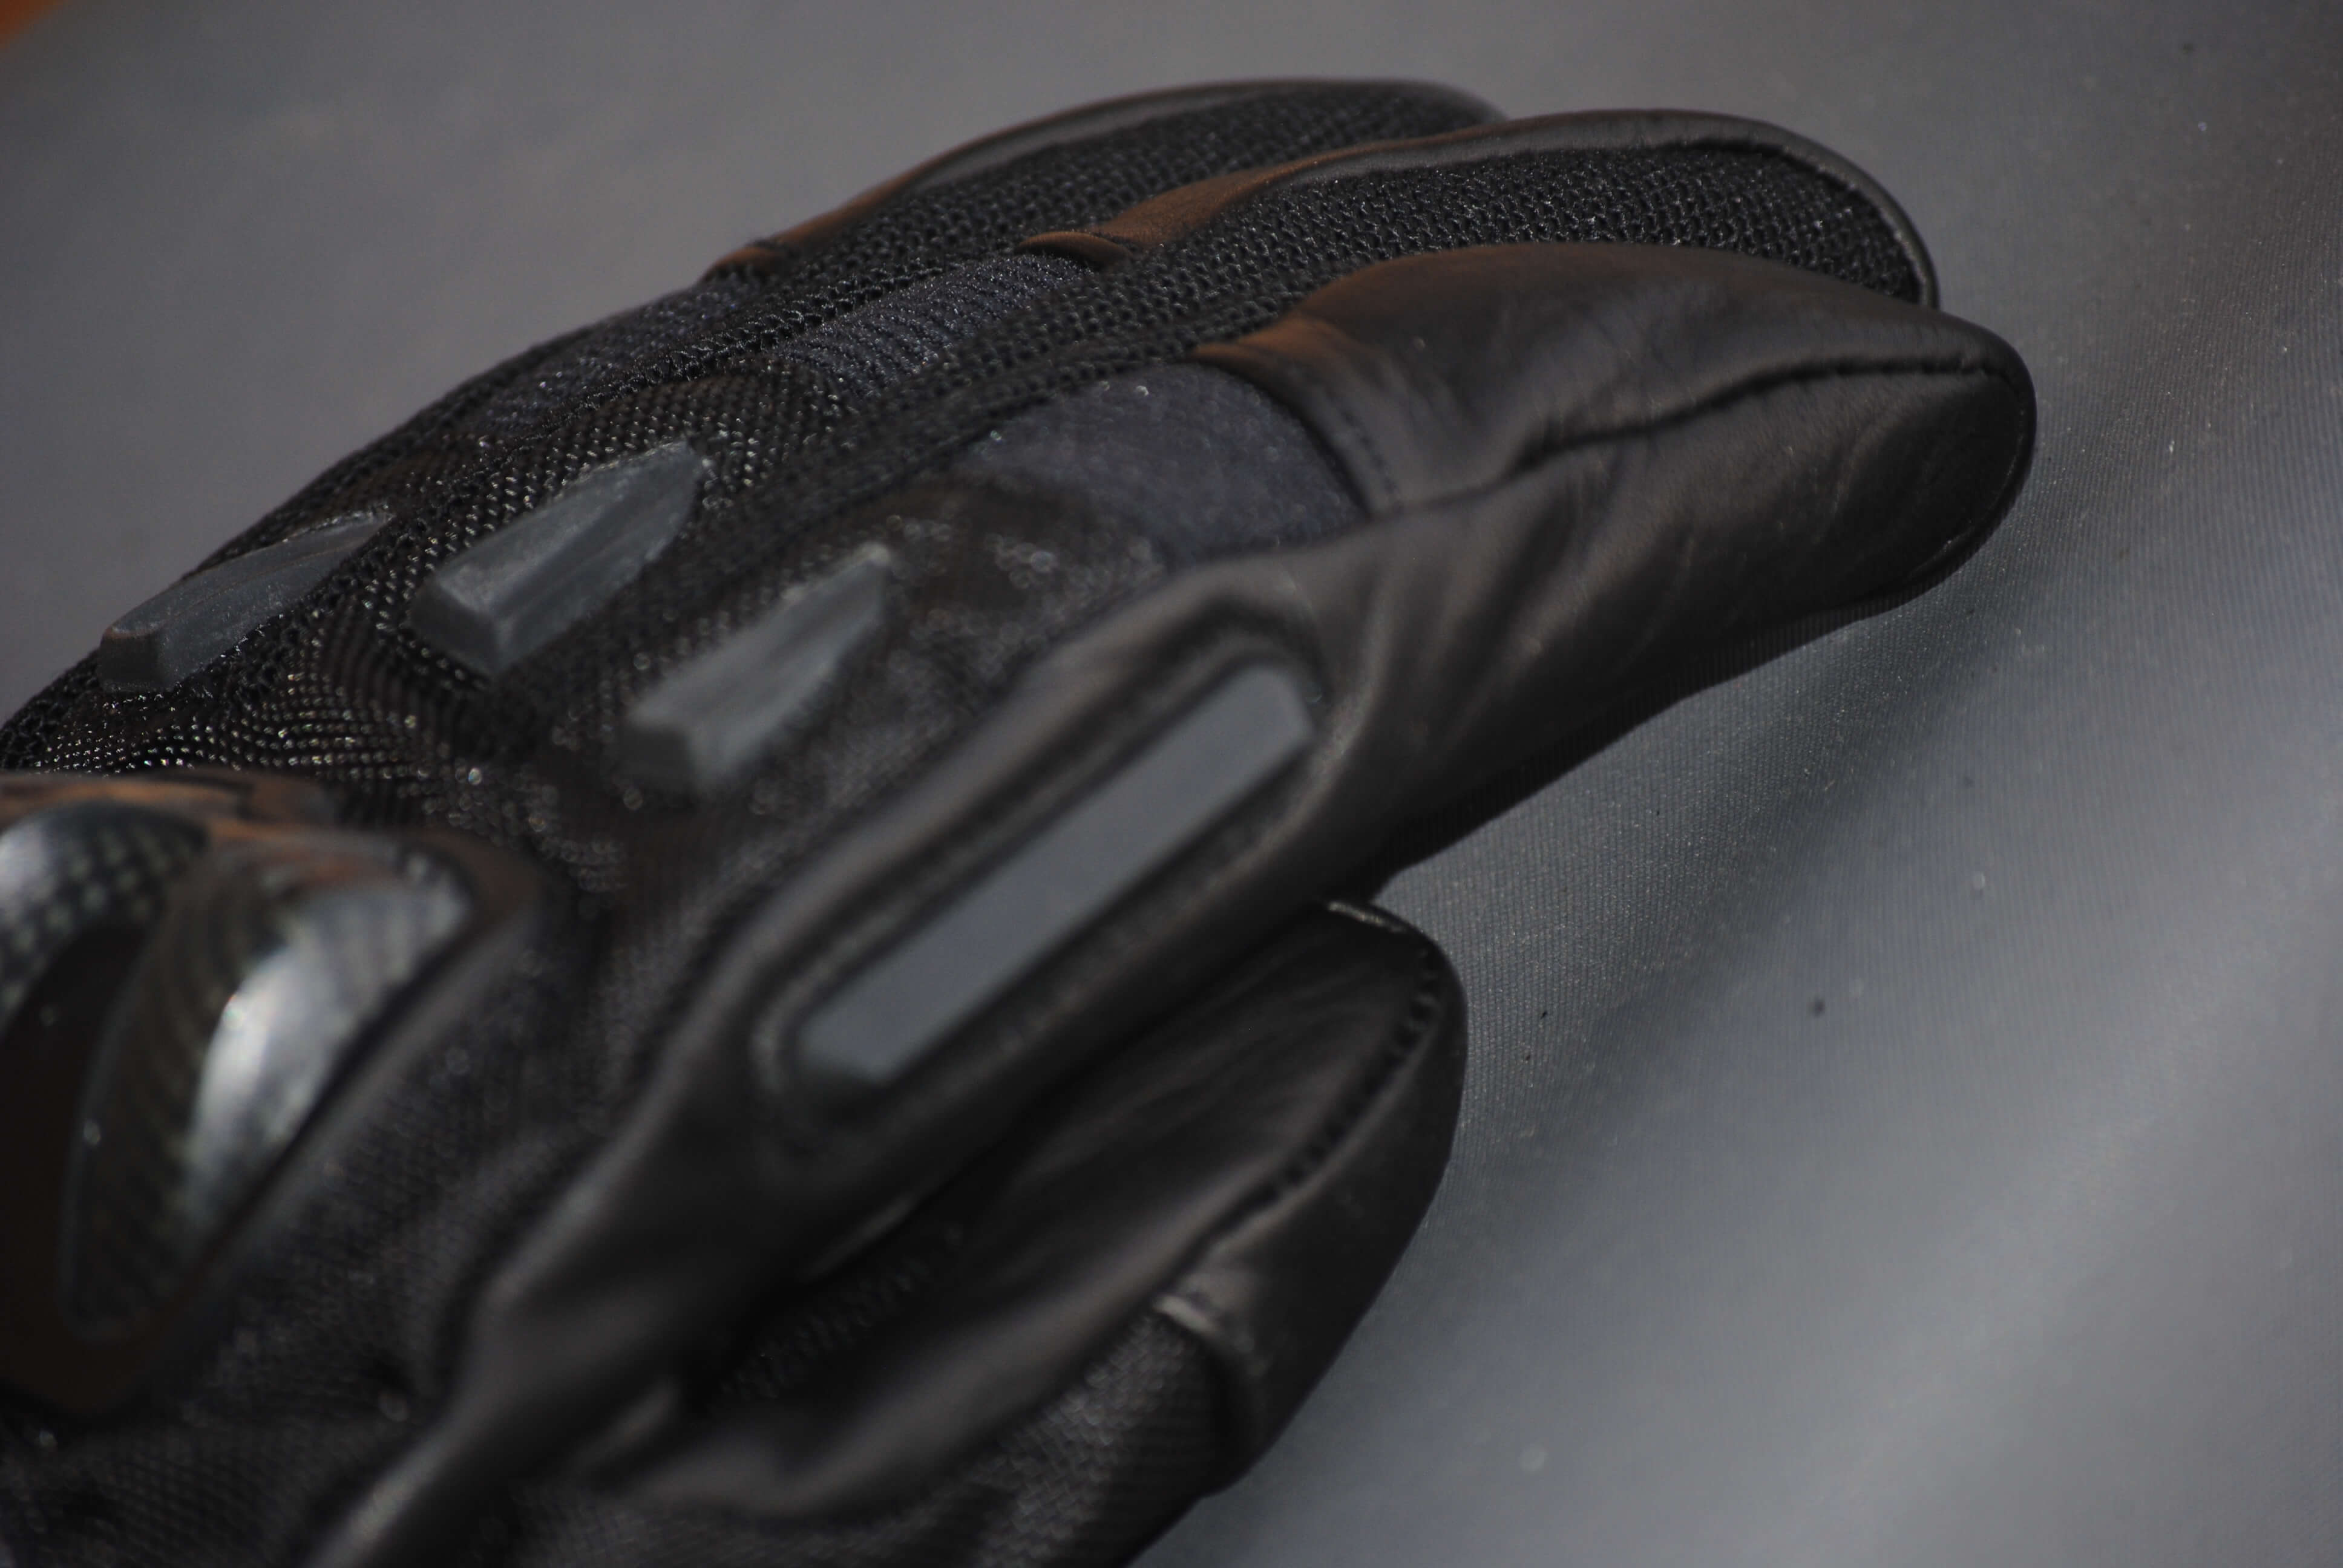 ICON Patrol Waterproof Gloves are really waterproof